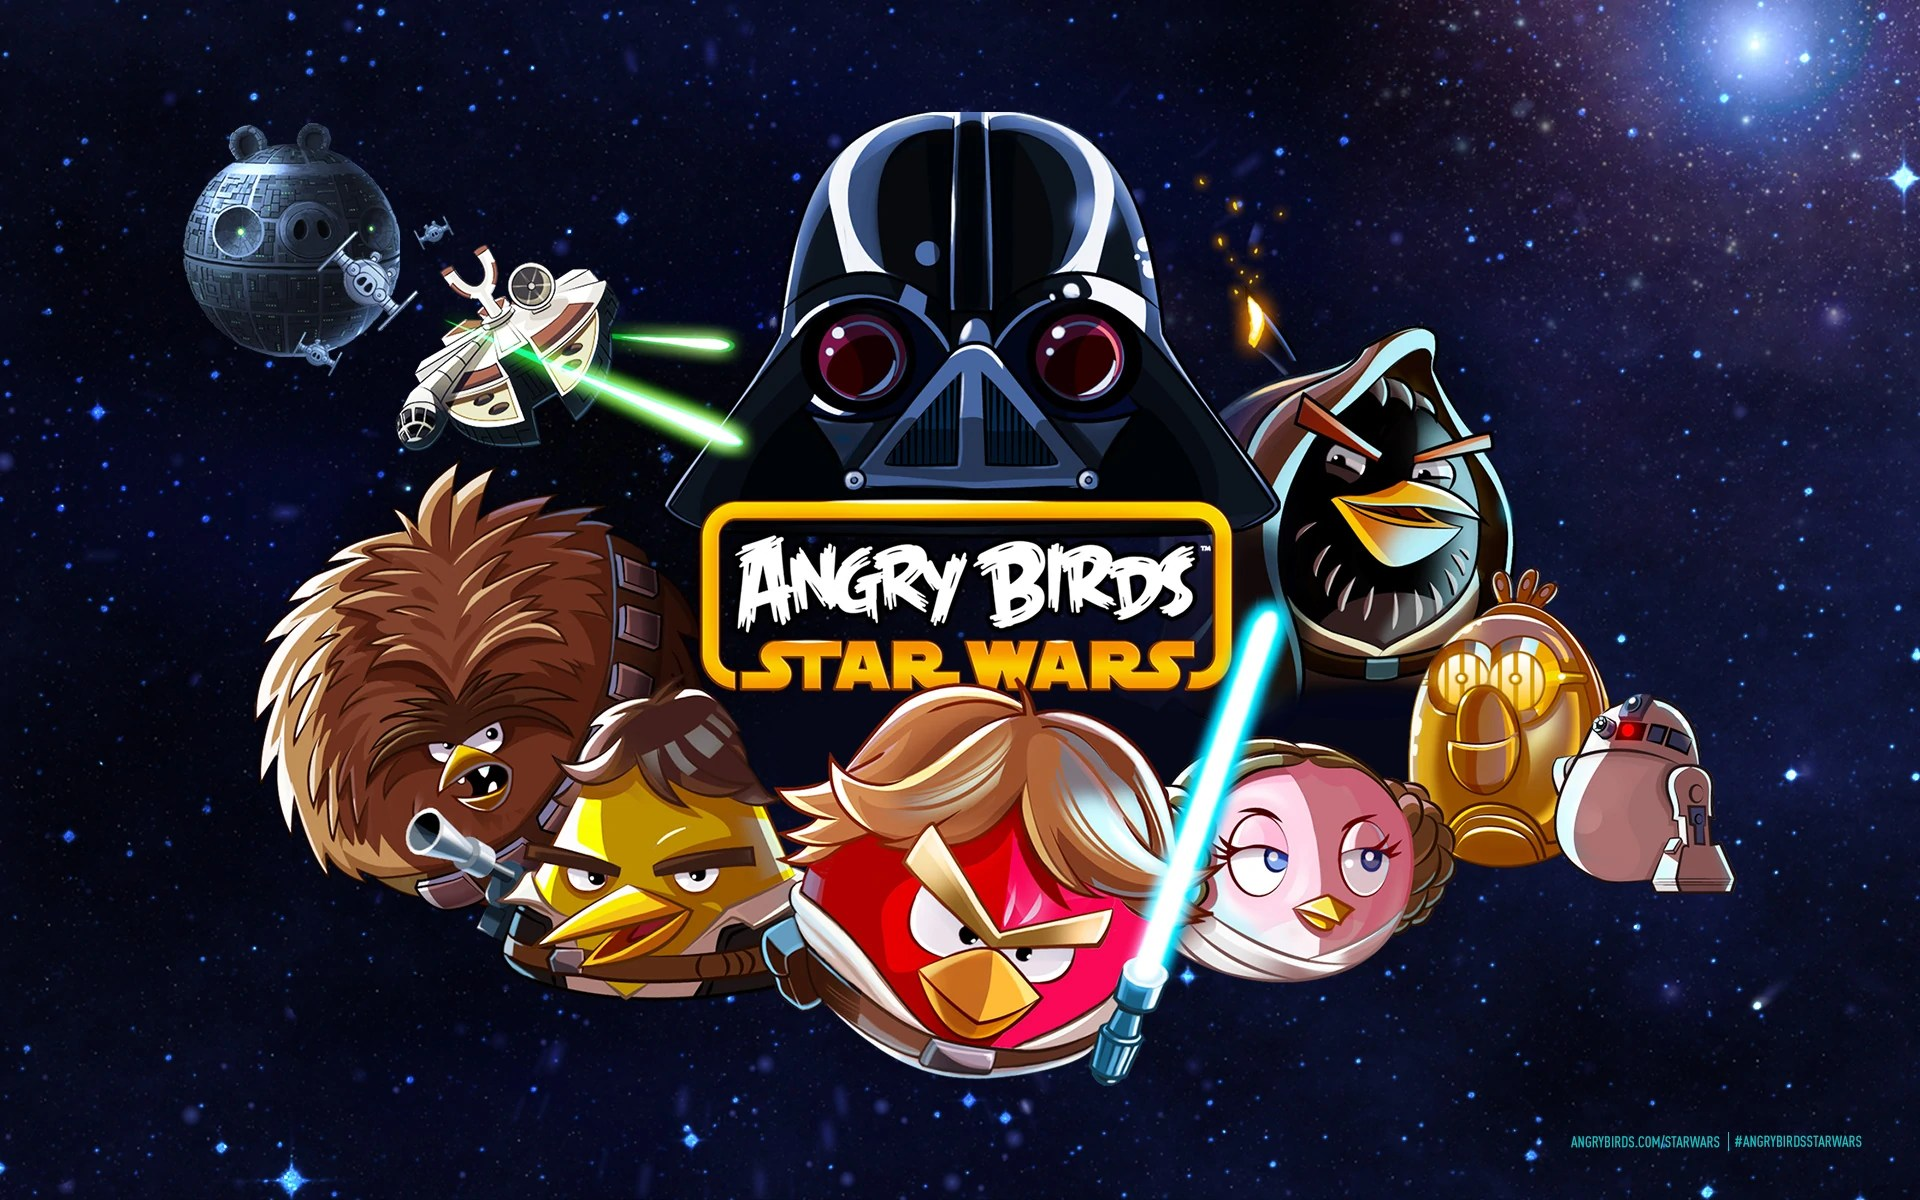 Angry All Characters Wars Birds Star